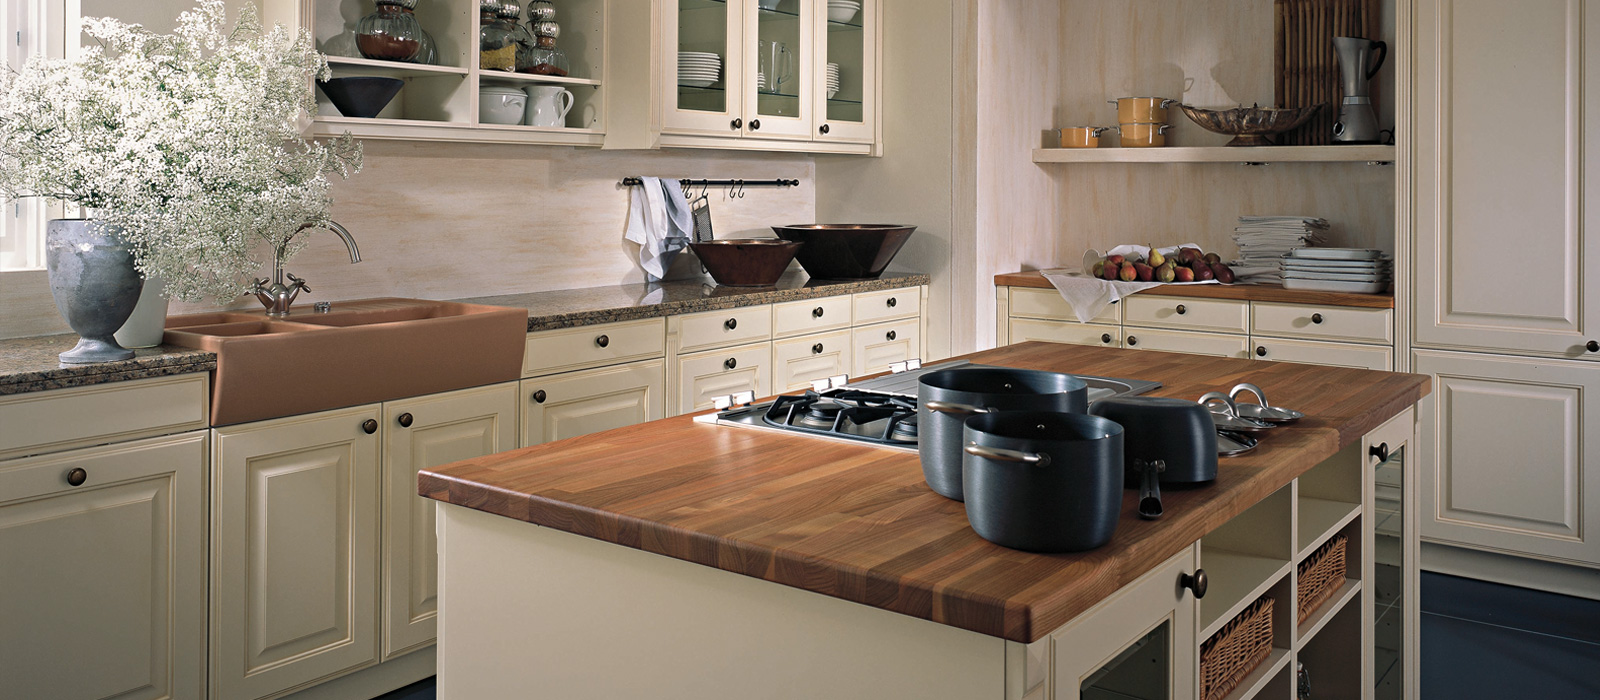 In Stock Kitchen Cabinets Yonkers Ny   CALVOS 2011 Kitchen Cabinets Leicht  New York